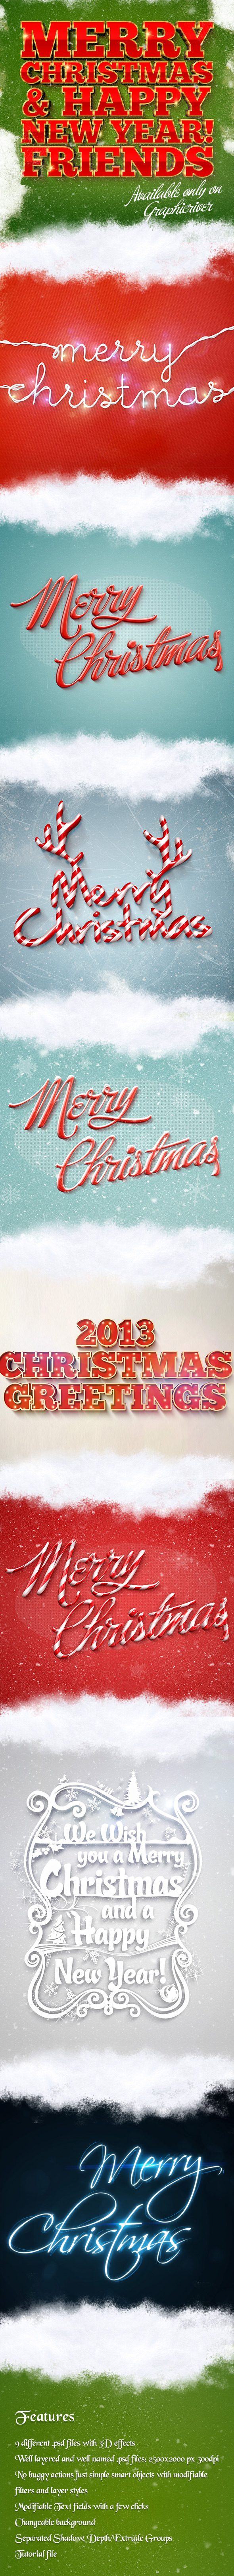 Holiday Christmas 3D Text Effects Pack for Photoshop